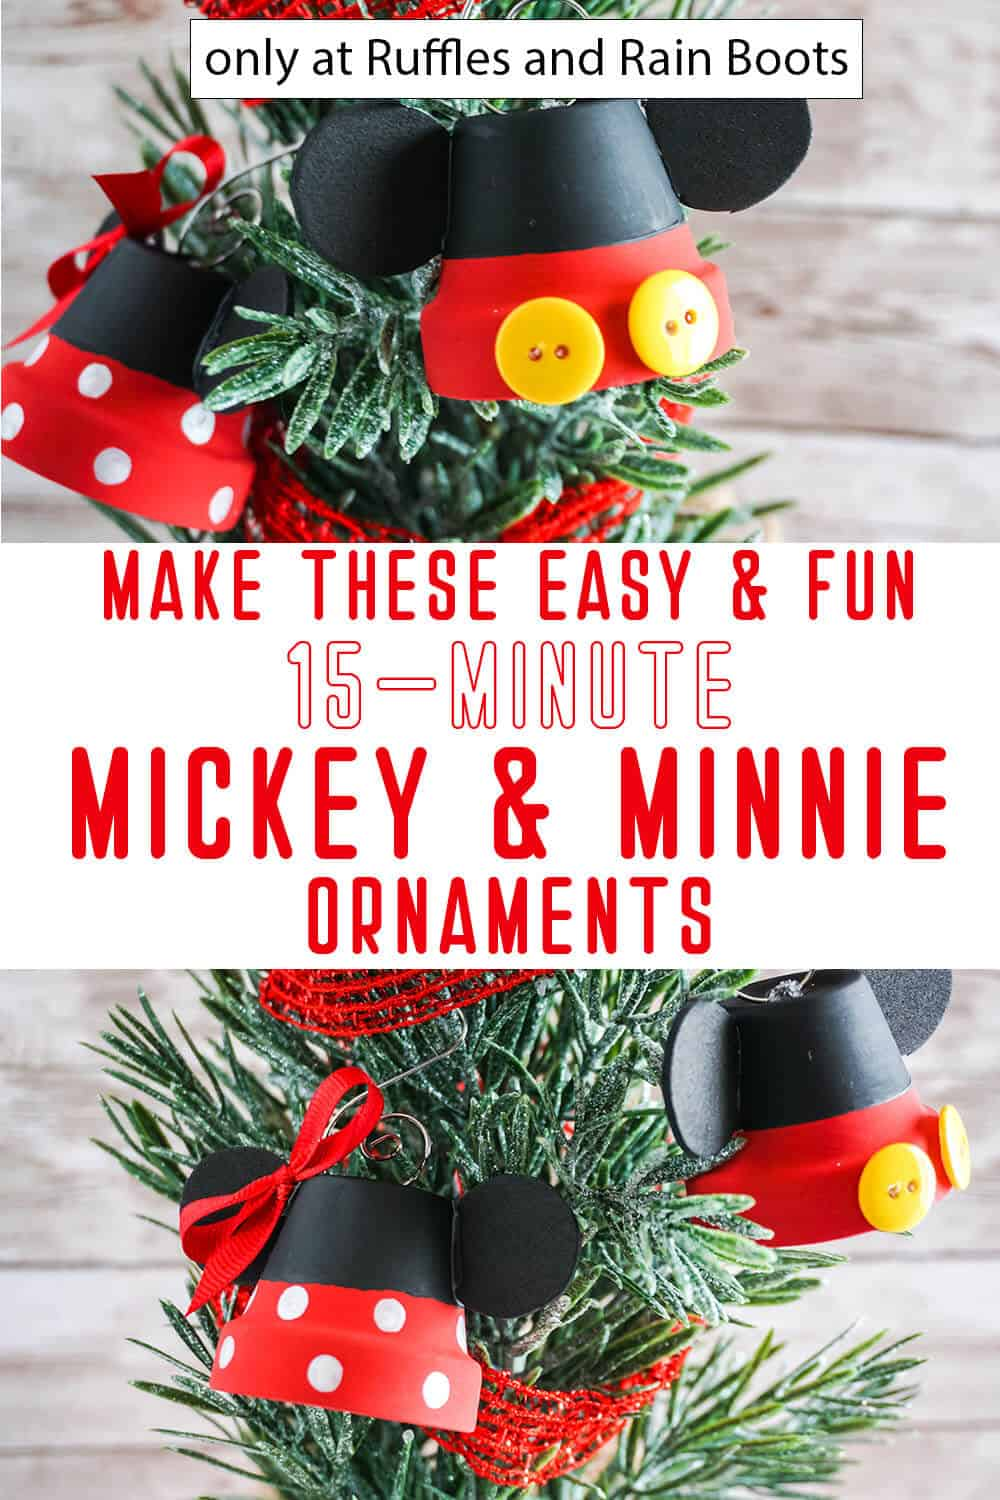 photo collage of easy diy disney ornament craft for kids with text which reads make these easy & fun 15-minute mickey & minnie ornaments